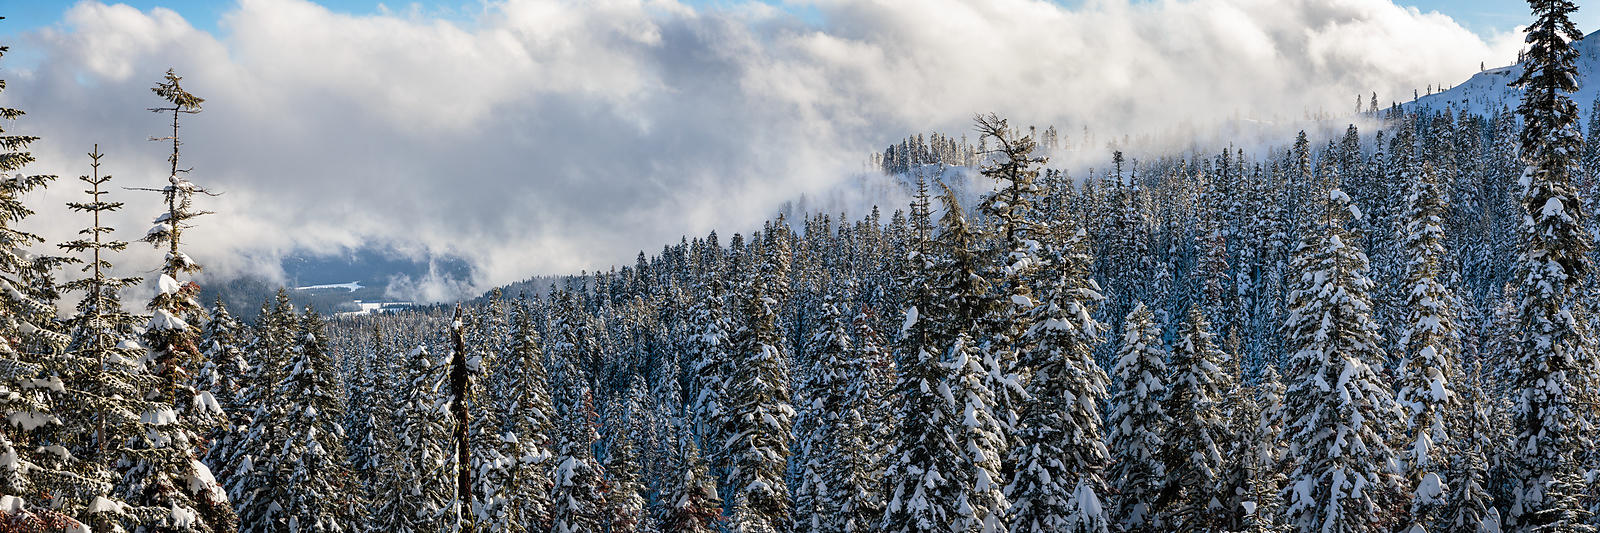 Owen_Roth_Photography-January_16_2016-Snow_Shoe-8530-Pano-00002